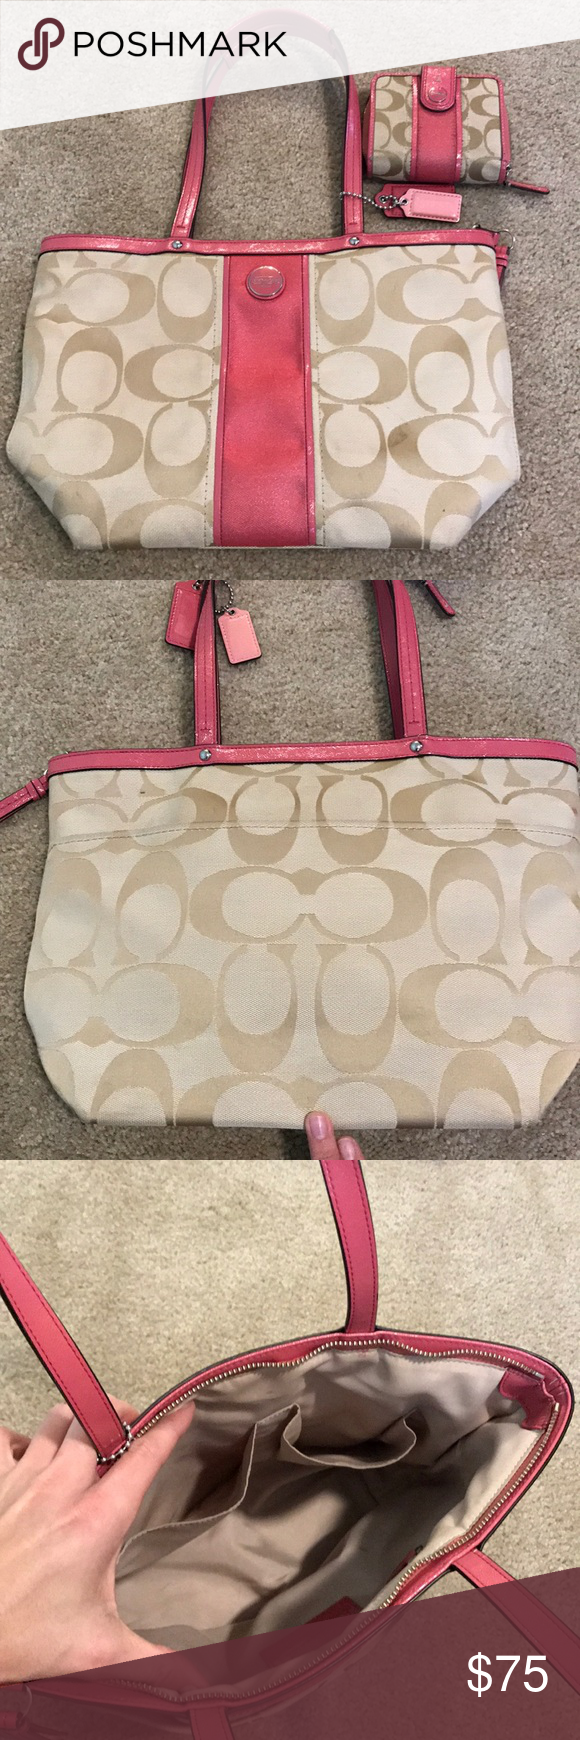 Authentic Coach Purse And Matching Wallet Coach Purses Purses Bags